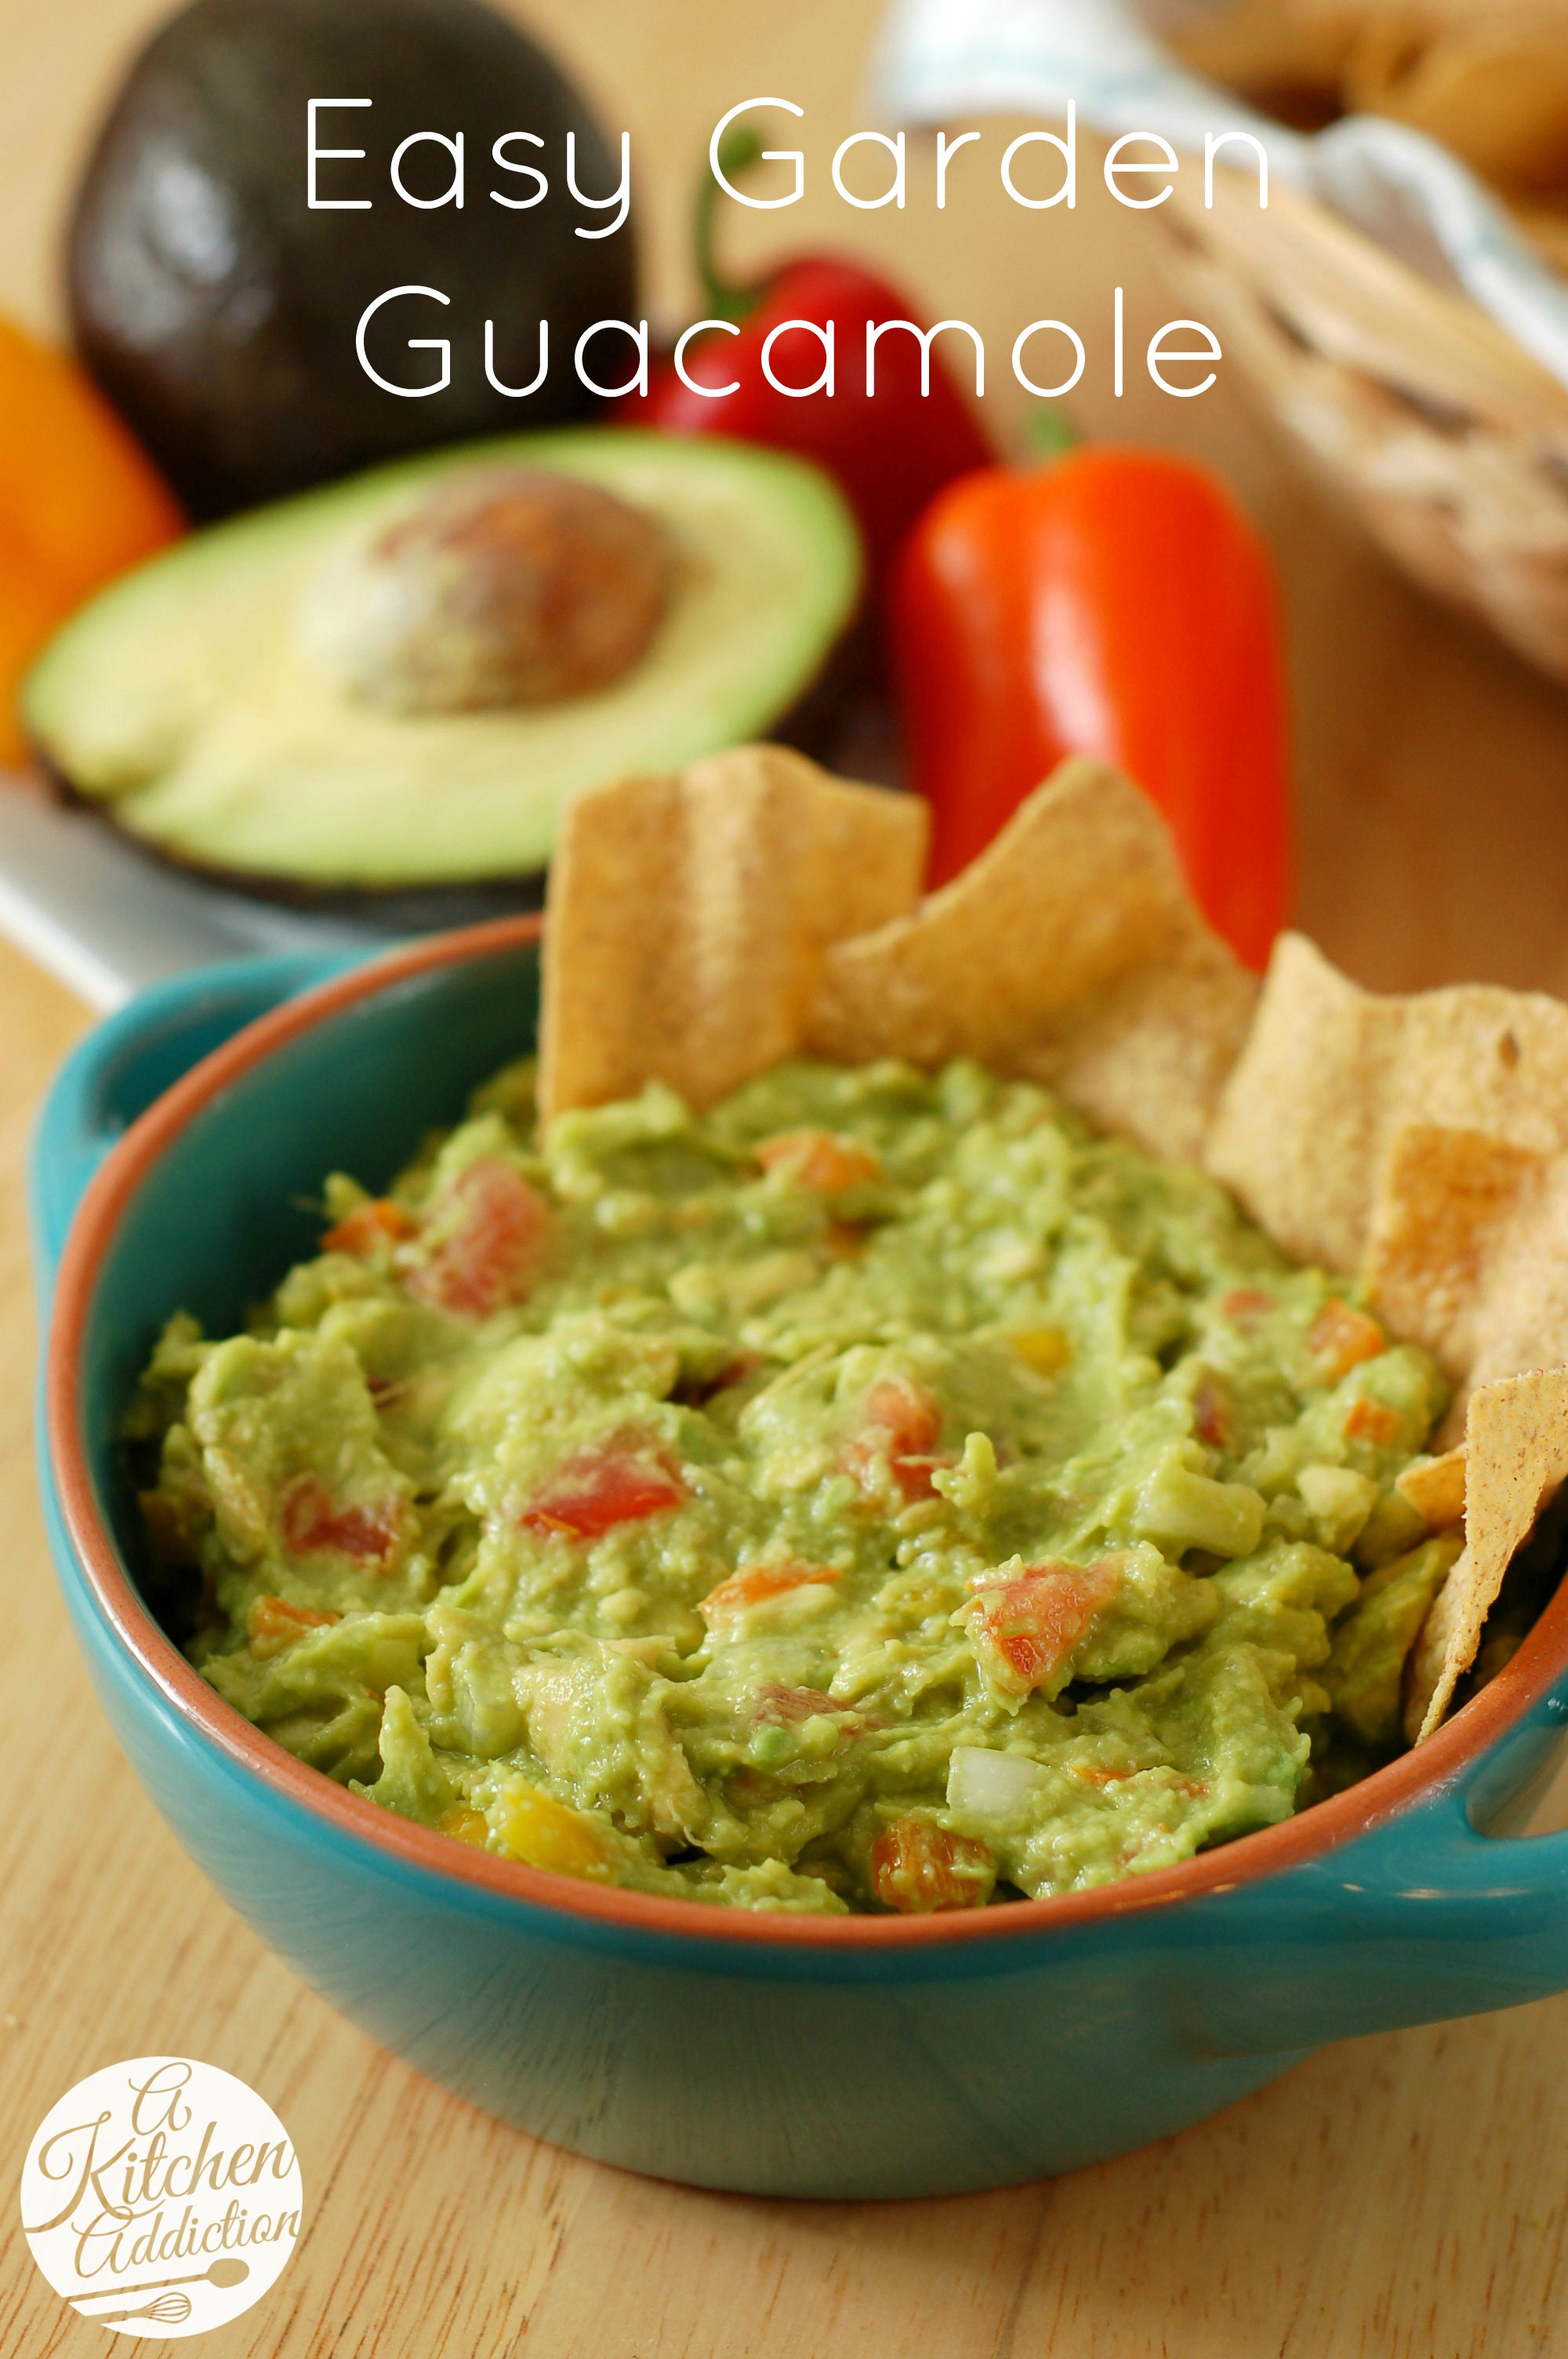 Healthy Guacamole Snacks  Easy Garden Guacamole A Kitchen Addiction